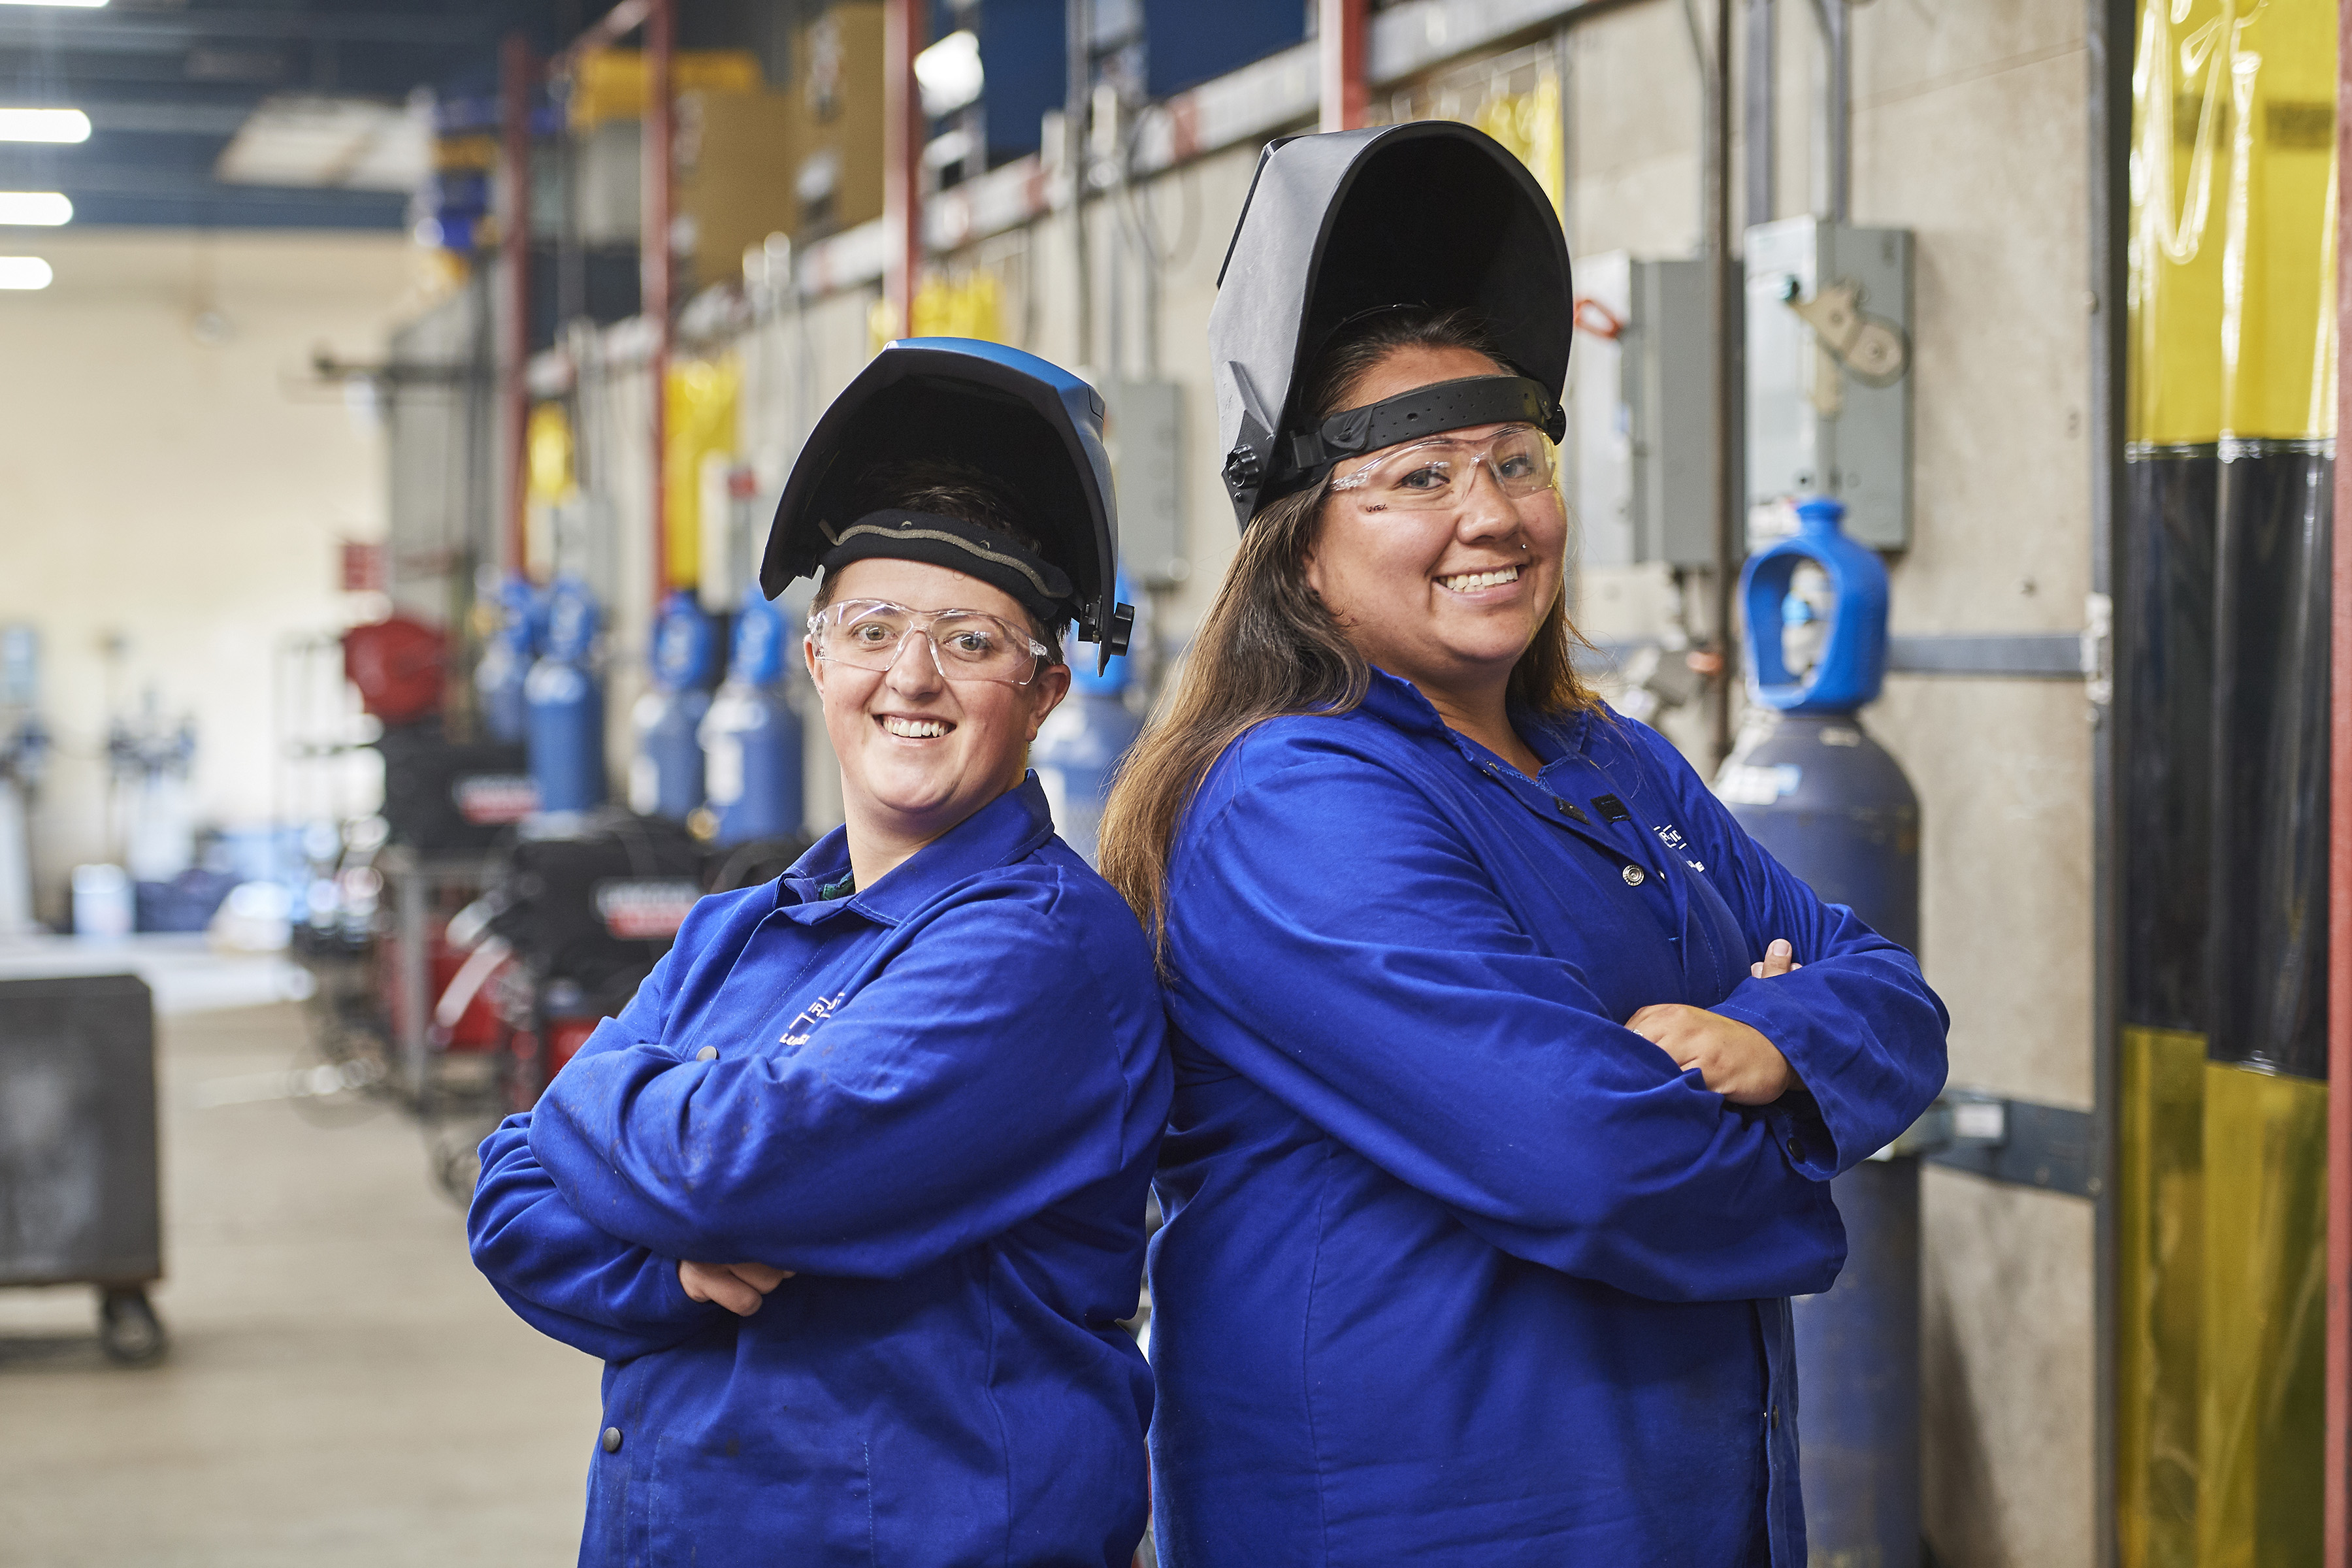 Two welding students standing back to back in welding bay